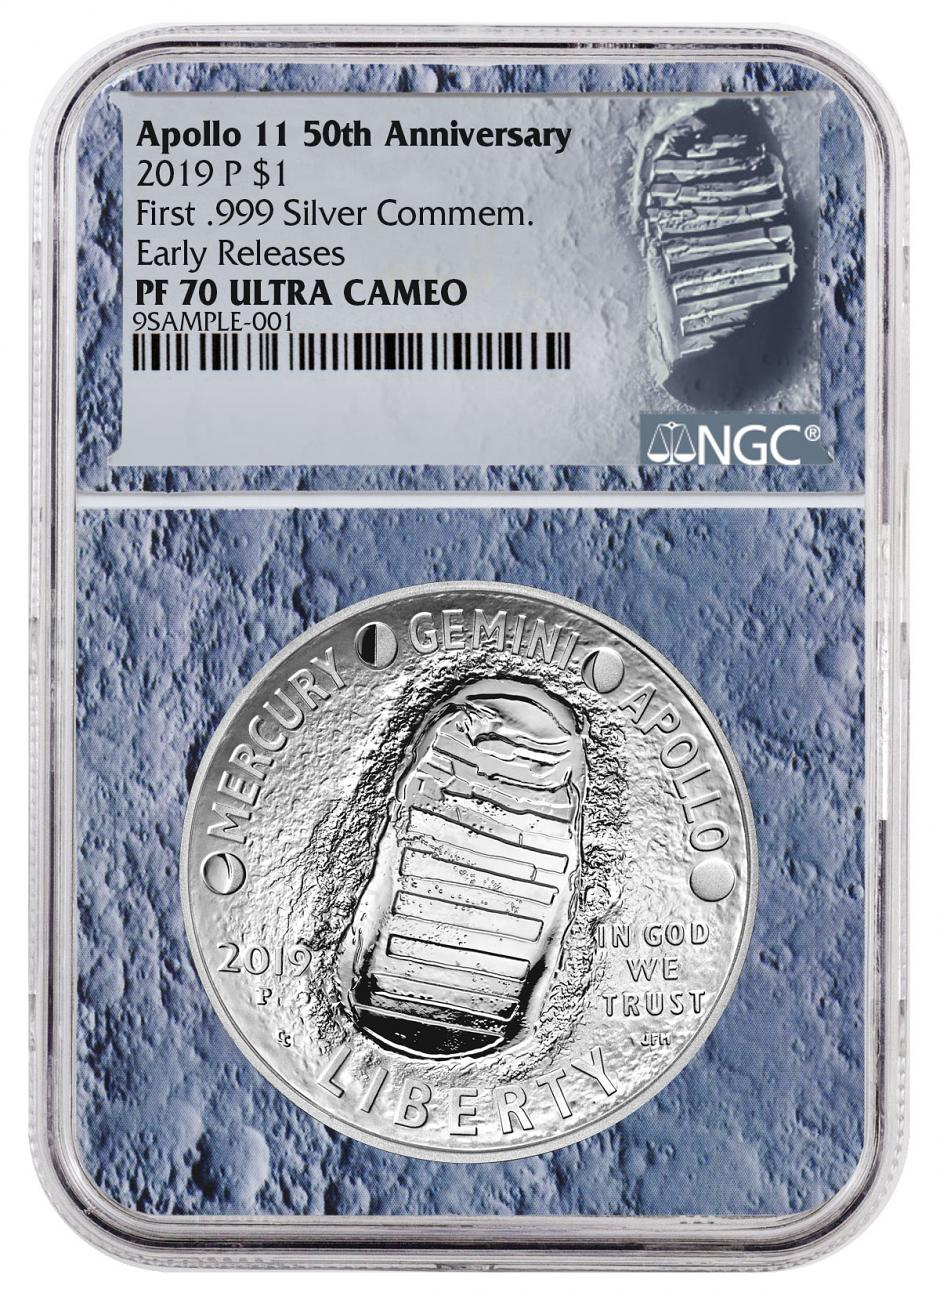 2019-P Apollo 11 50th Anniversary Commemorative Silver Dollar Proof Coin NGC PF70 ER With Apollo 11 Mission Patch Moon Core Holder